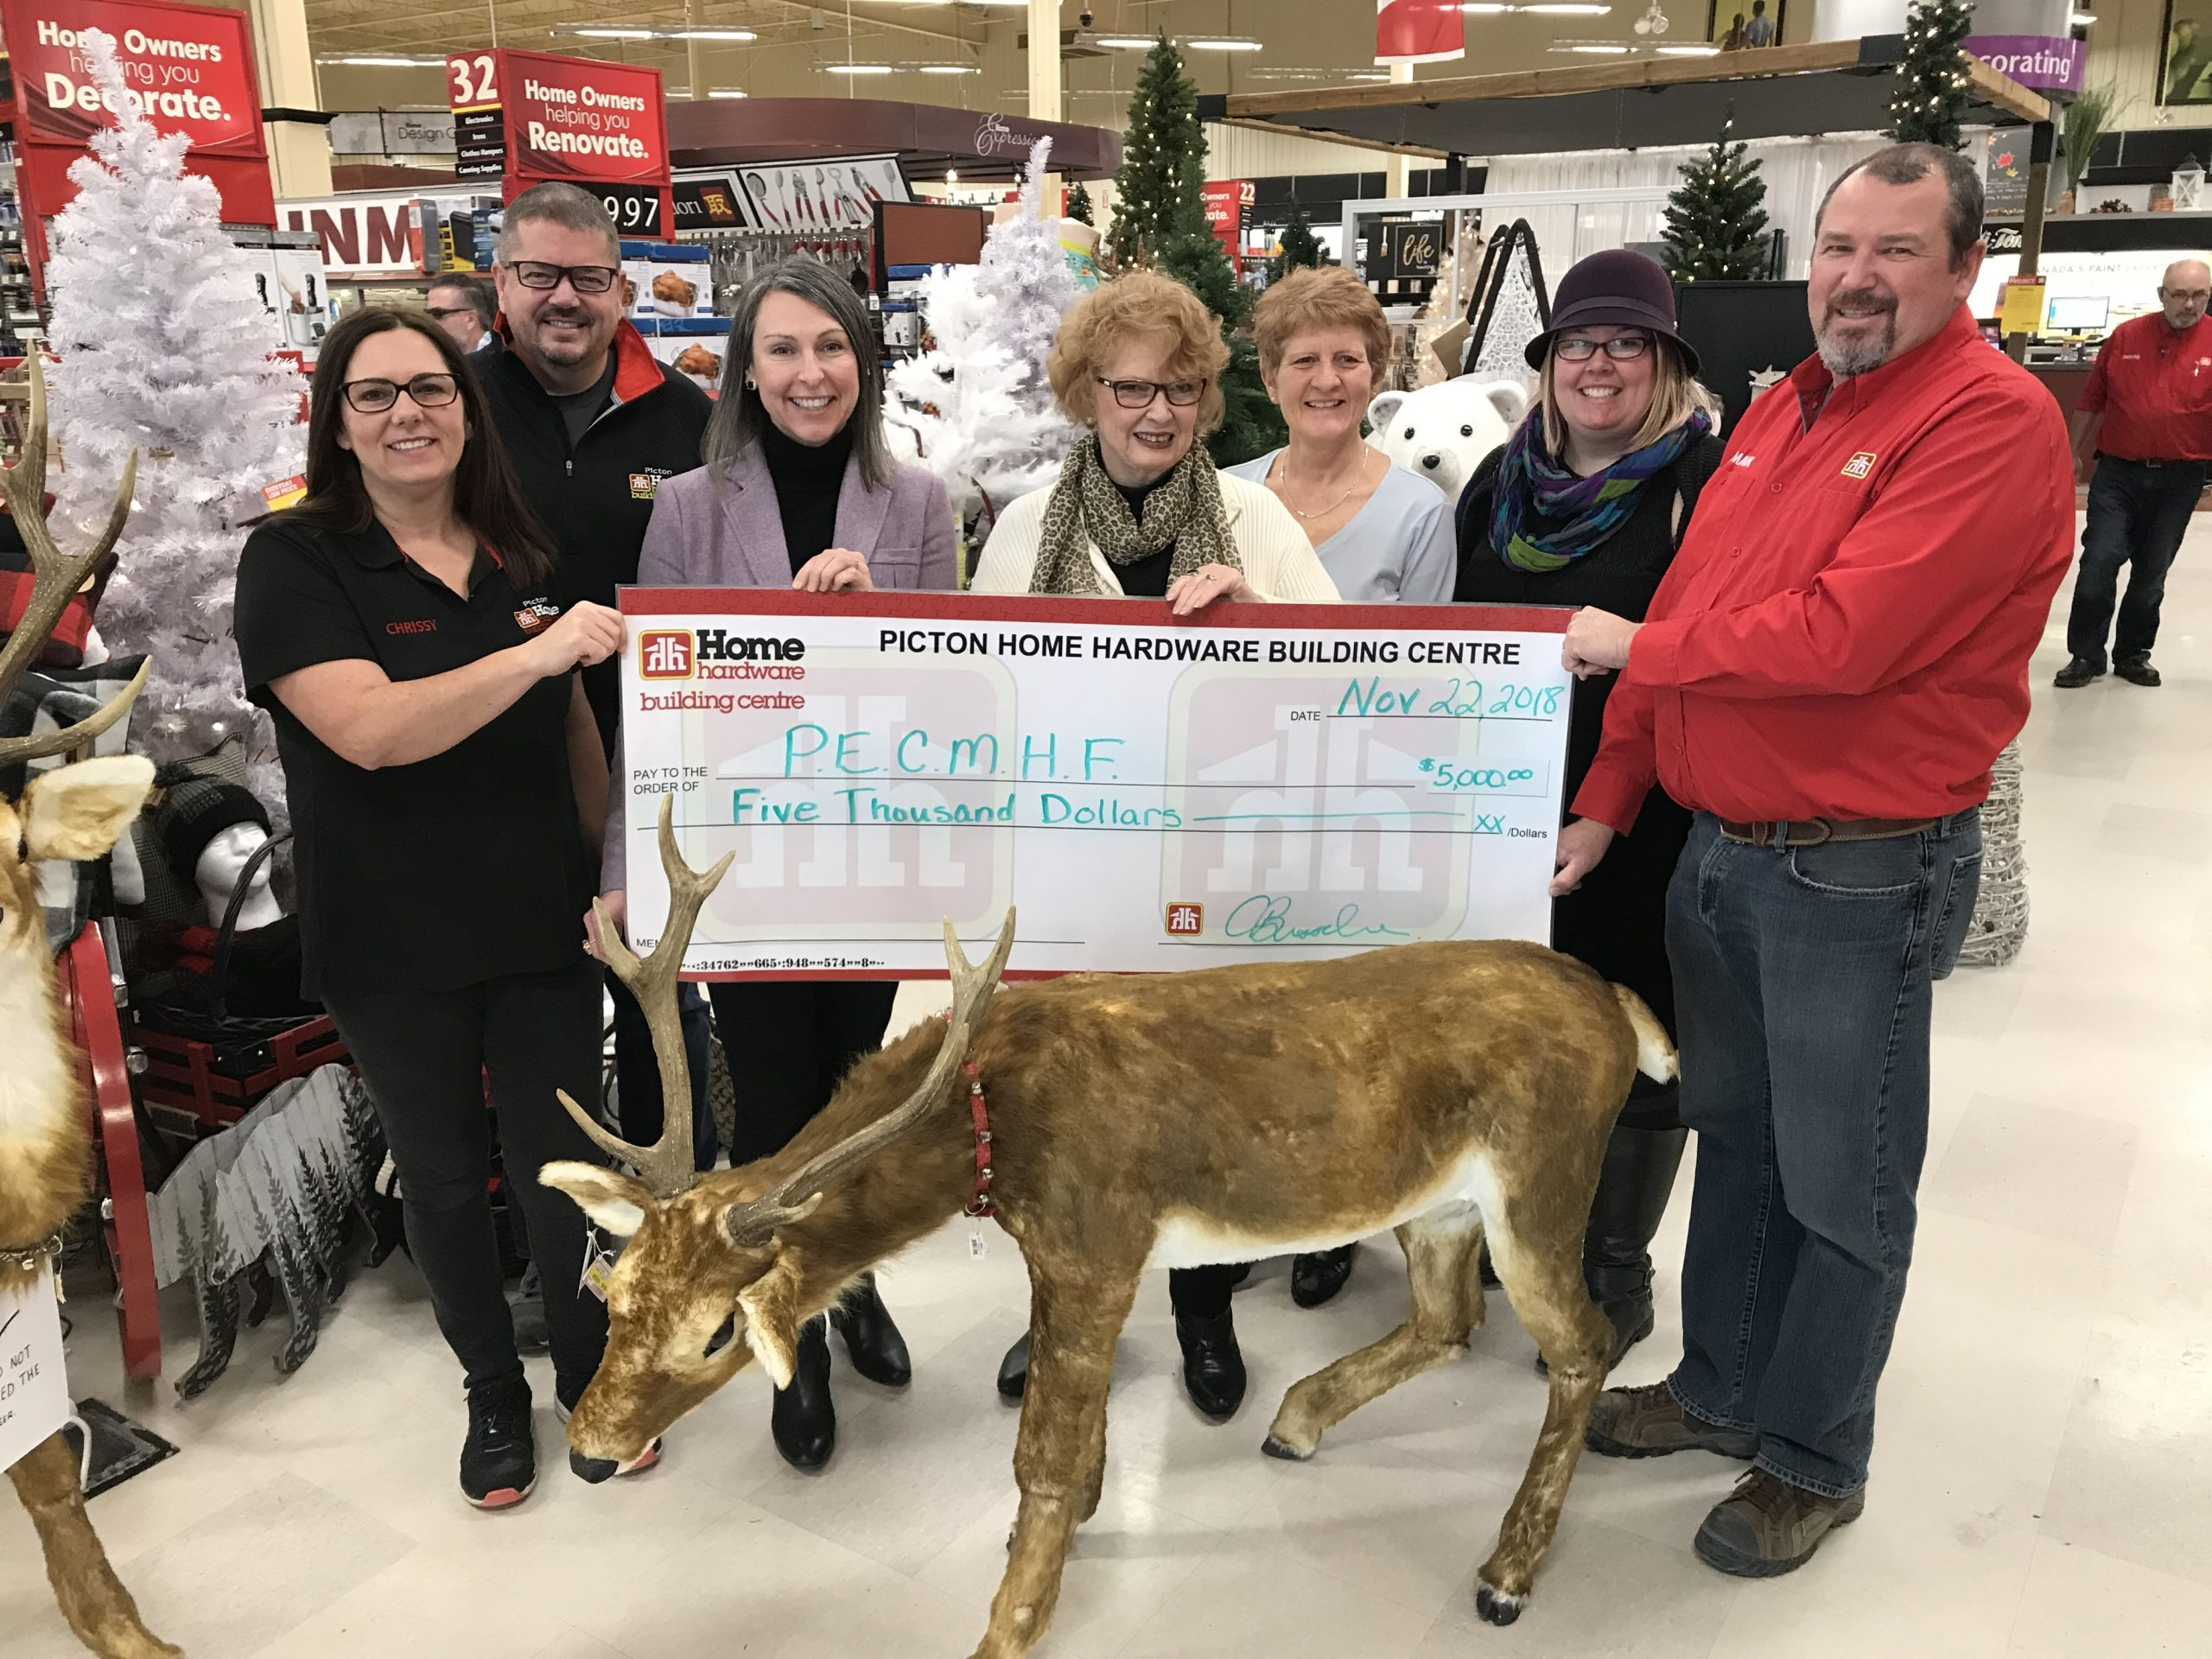 Picton Home Hardware donates $5,000 to Back The Build Campaign